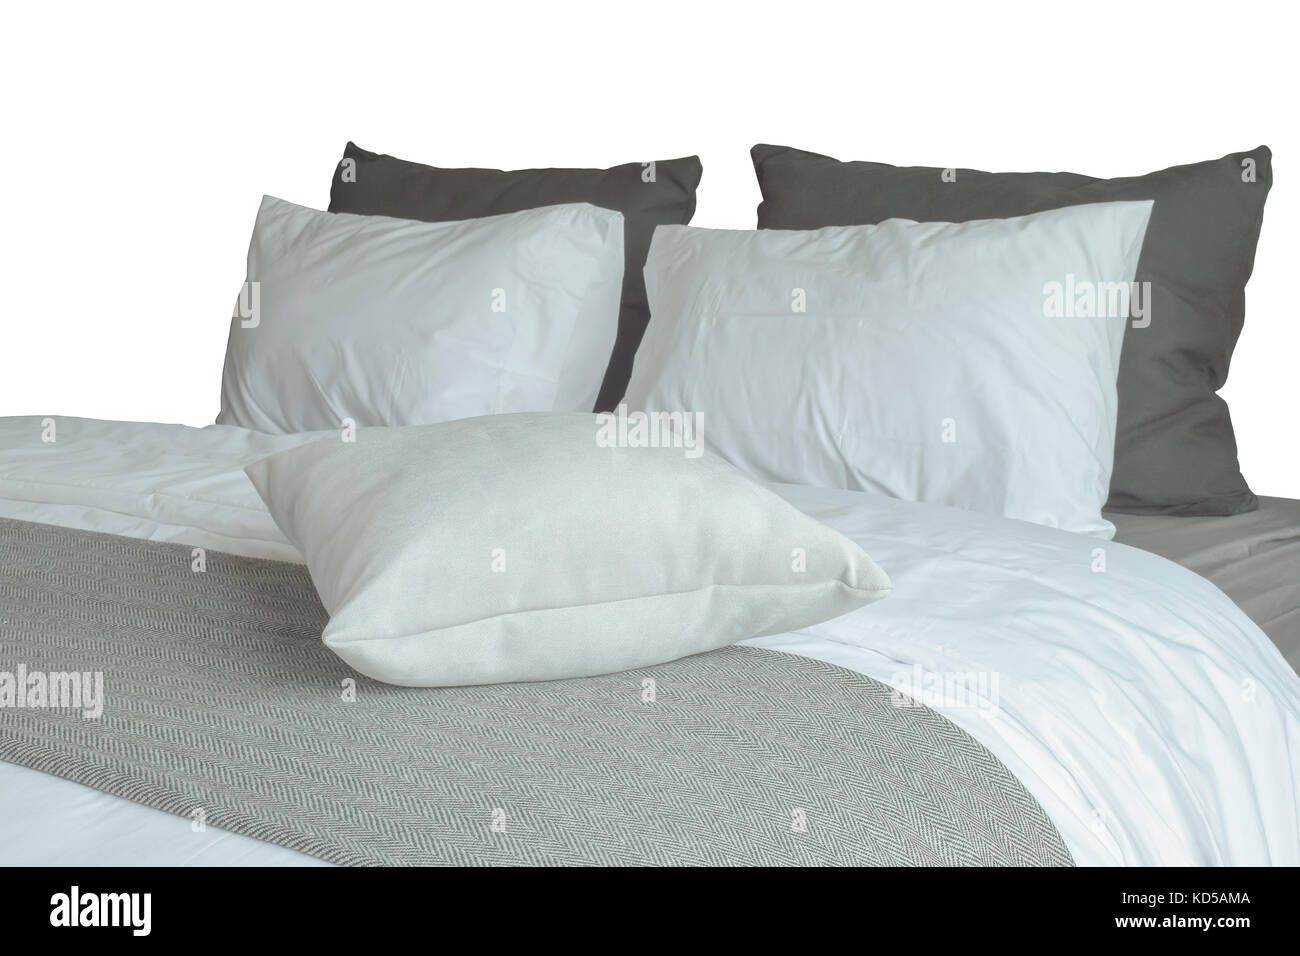 https www alamy com stock image soft white pillows and comfortable bed on white background with clipping 163002010 html